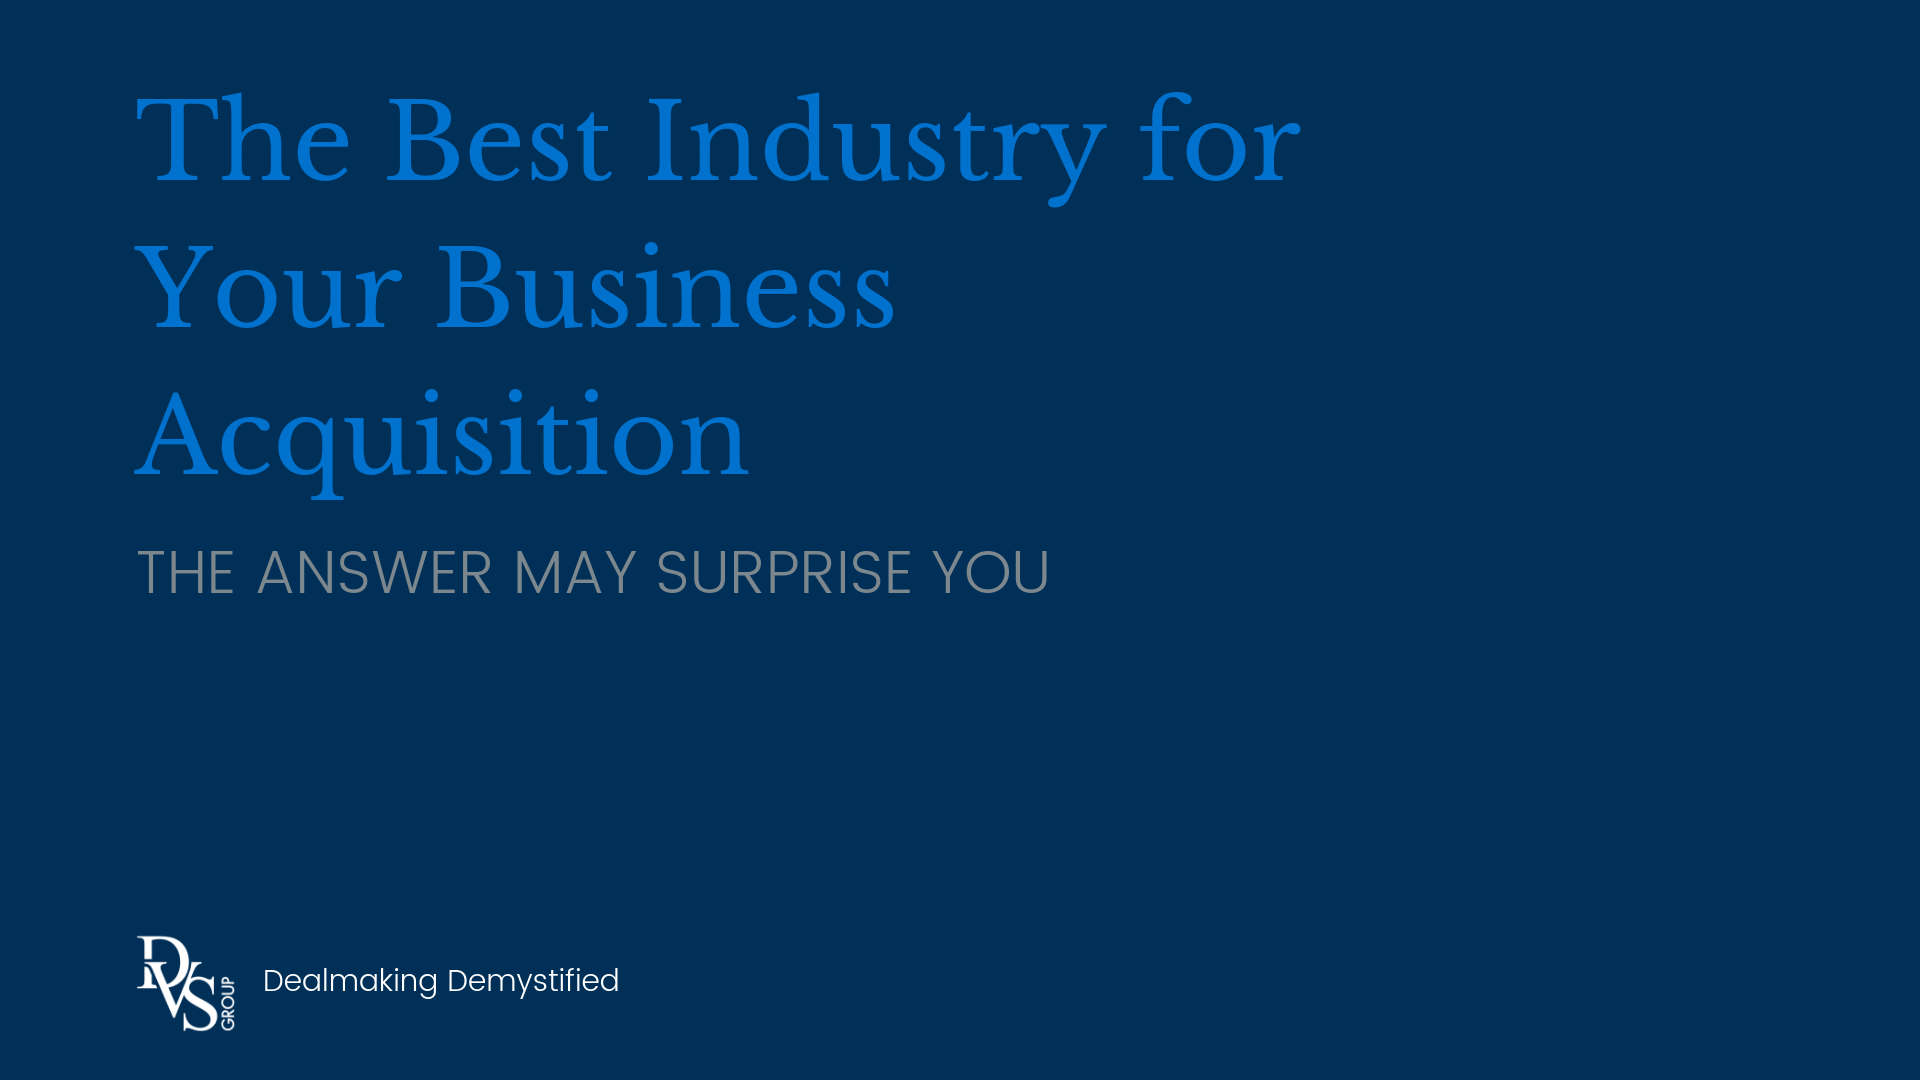 The Best Industry for Your Business Acquisition